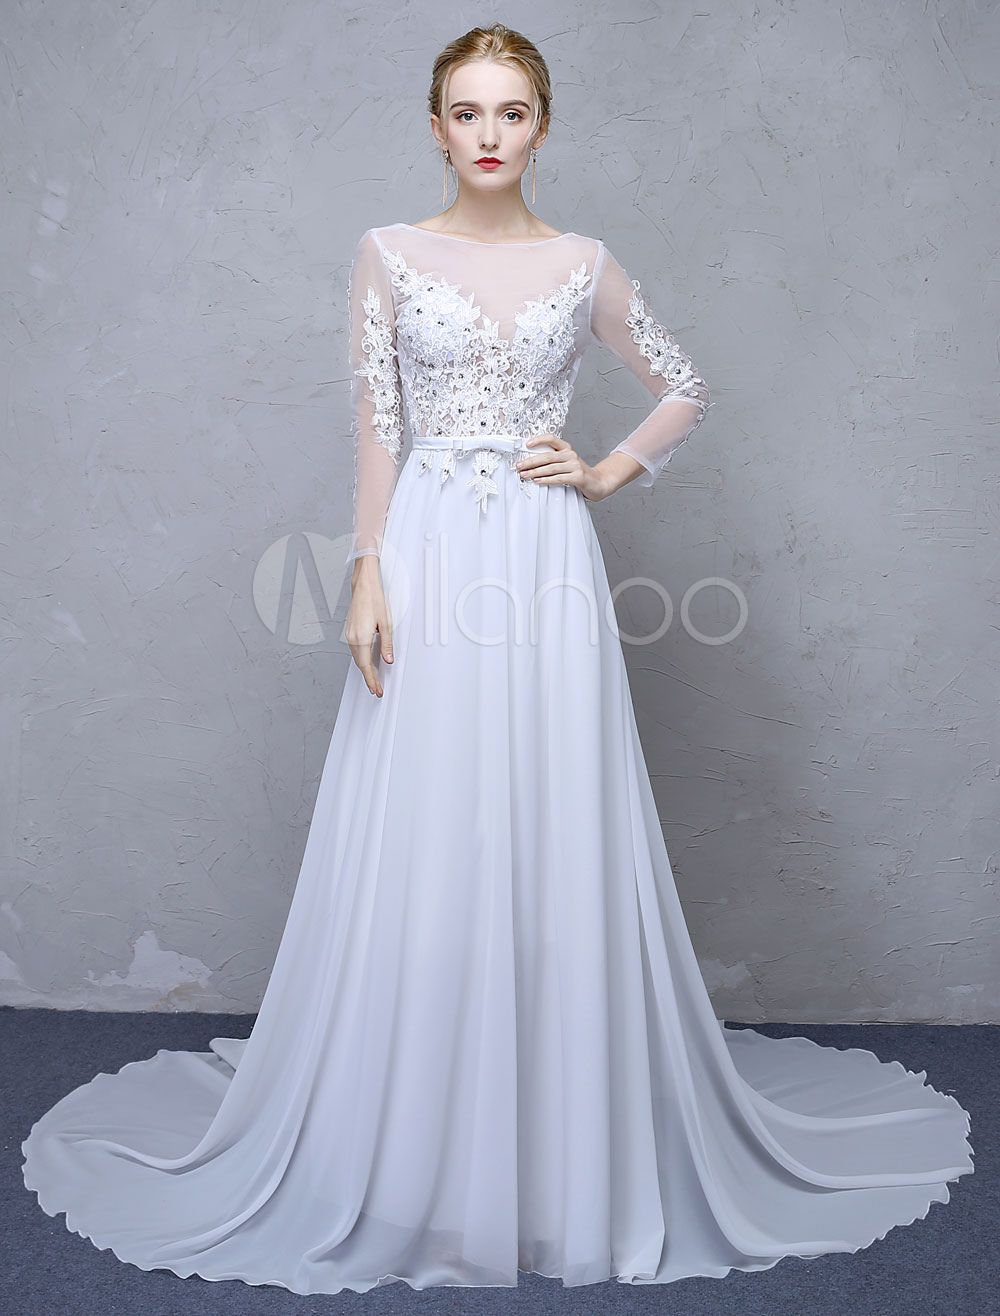 Summer wedding dresses white lace long sleeve backless beaded